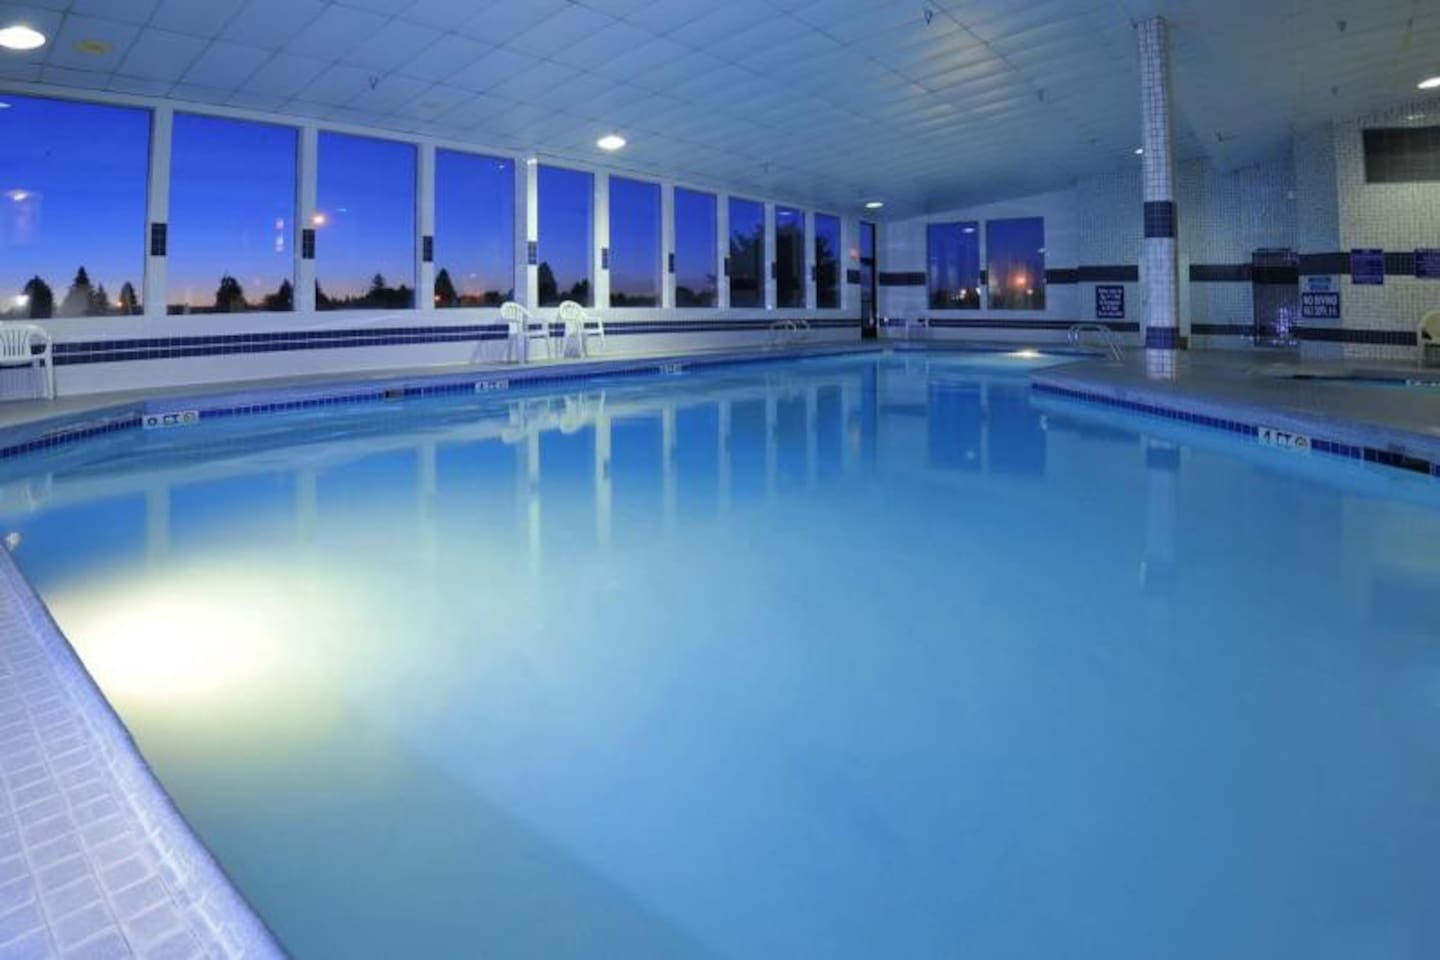 There is a swimming pool, and it is heated!